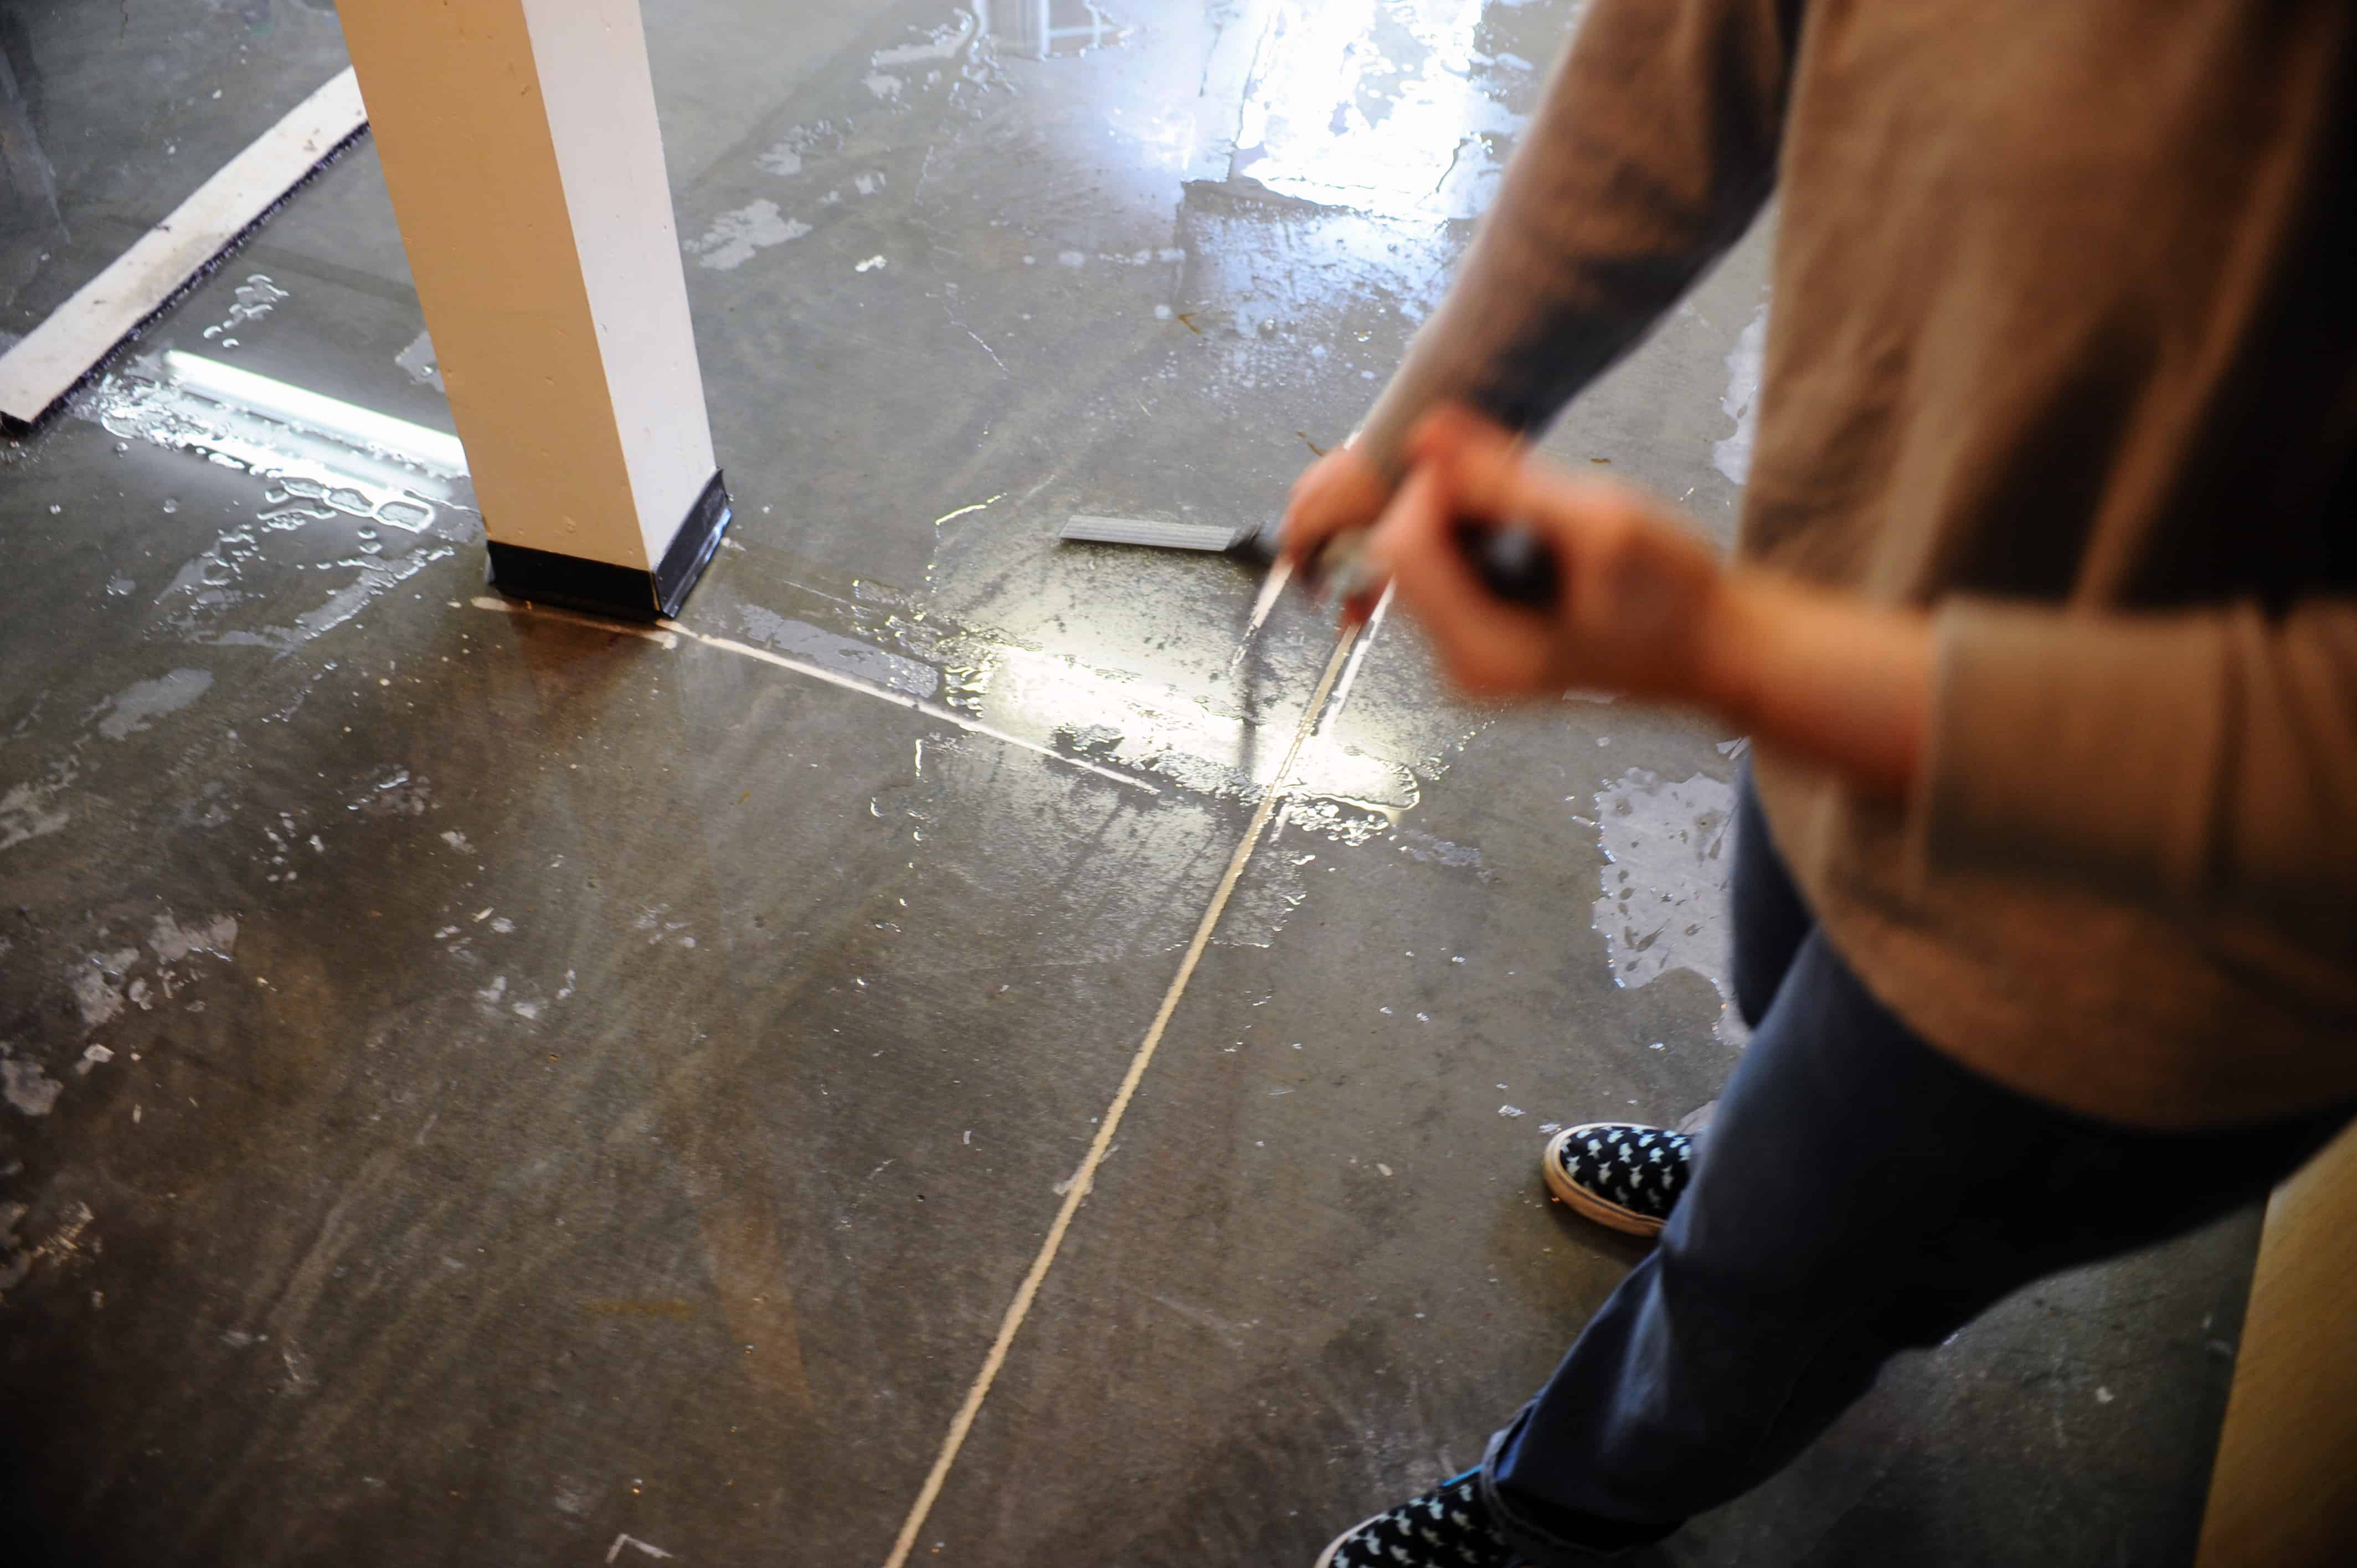 Cove Joint Seepage: Fixing Basement Leaks Where Wall Meets Floor